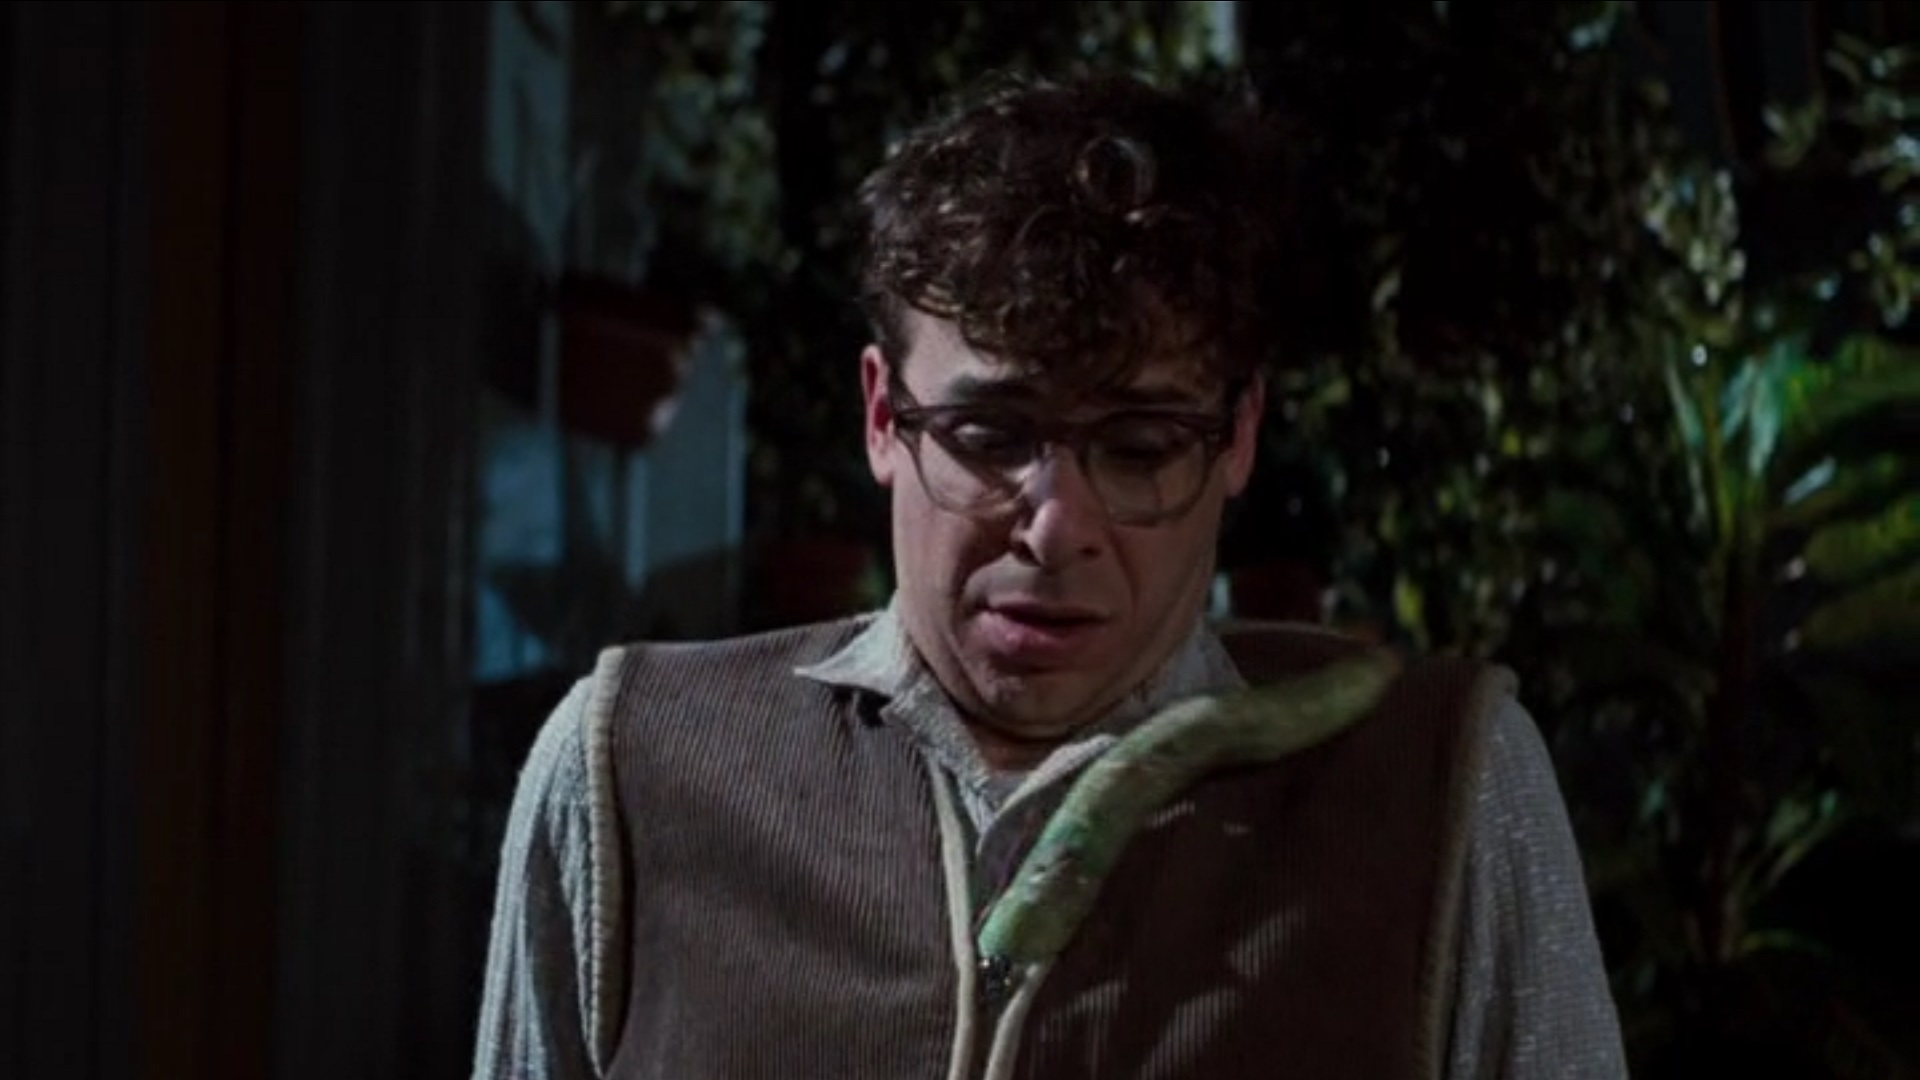 34 25 Things You Never Knew About Little Shop of Horrors